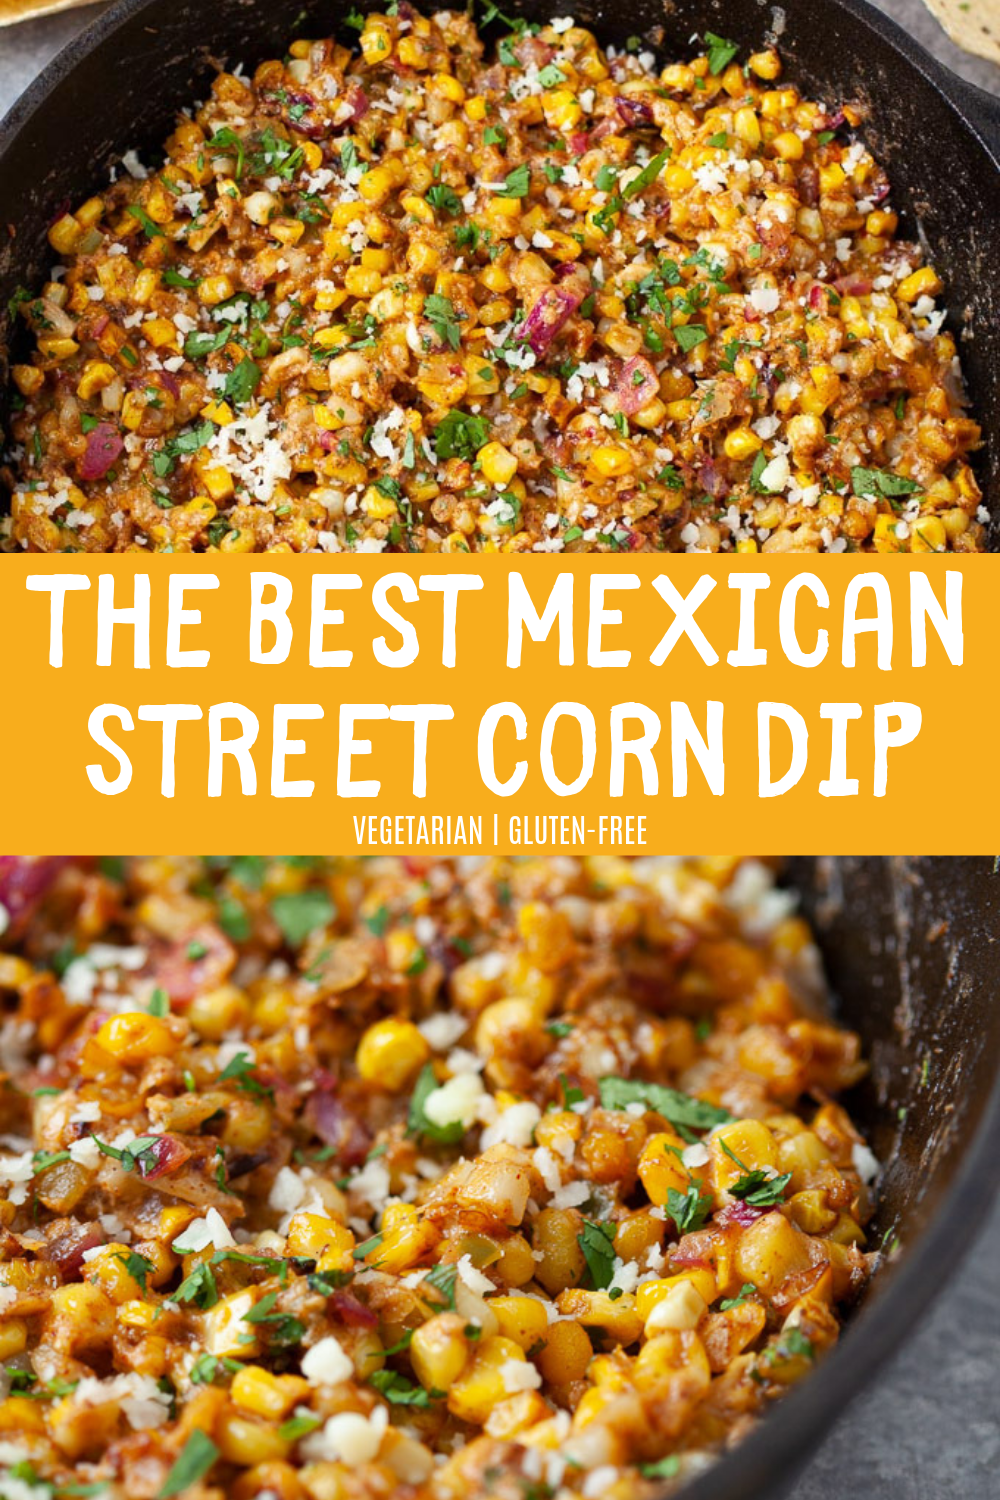 The Best Mexican Street Corn Dip The best Mexican street corn dip Super light and refreshing for the summer with all your beloved street corn flavors Perfect for your nex...